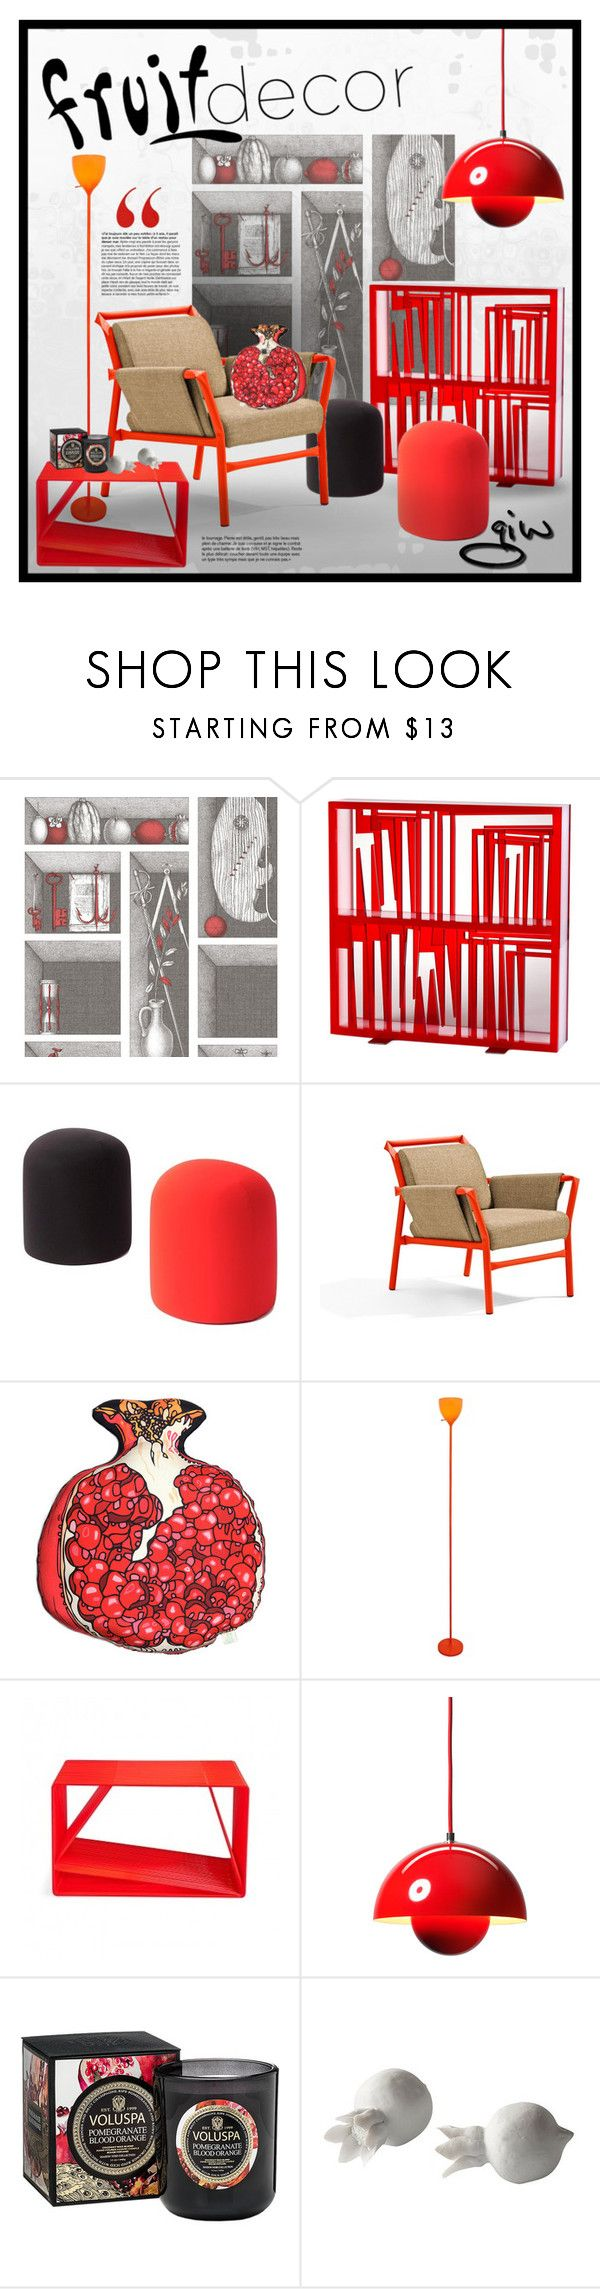 """red fruit punch..."" by ian-giw ❤ liked on Polyvore featuring interior, interiors, interior design, home, home decor, interior decorating, Tourne, Fornasetti, Tisettanta and Silken Favours"